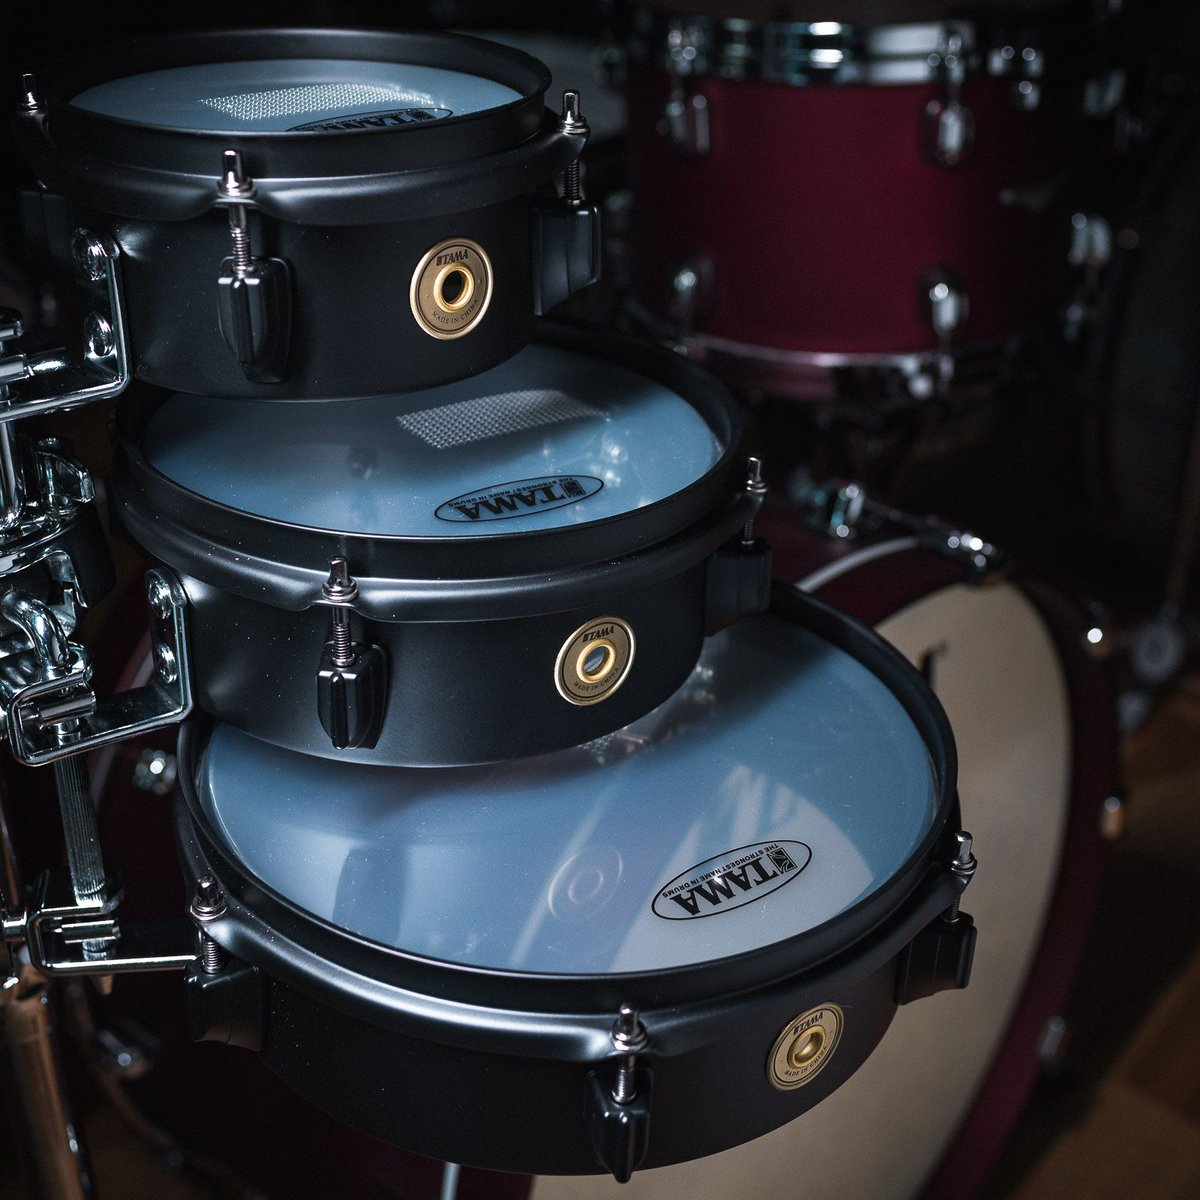 Explore new sounds with the new Tama Metalworks Effect Series snare drums in Matte Black, offered in 3x6, 3x8 & 3x10. Take your pick! http://bit.ly/31ToUqF . . . . . #tama #tamadrums #snaredrumfreakz #drumshop #drummer#drummers#drum #drumsdaily#drumsquad#drumfam #drumspic.twitter.com/4hzLuc0kHb